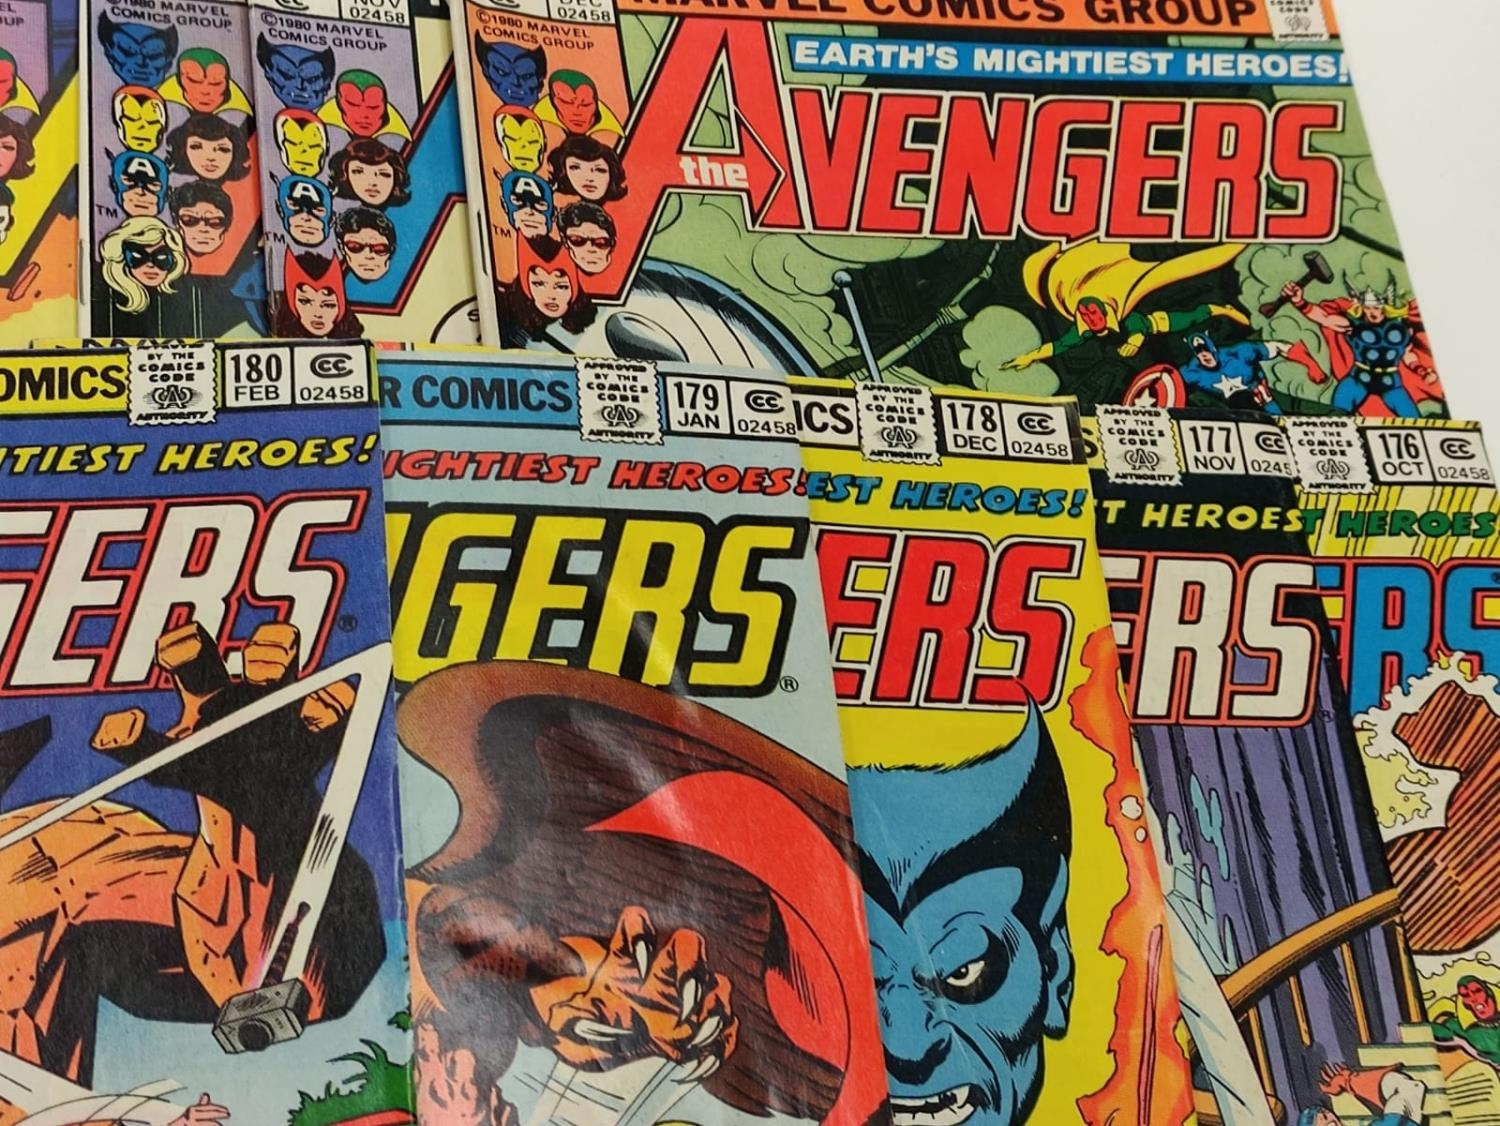 17 editions of Vintage Marvel 'The Avengers' comics in very good condition. - Image 10 of 12